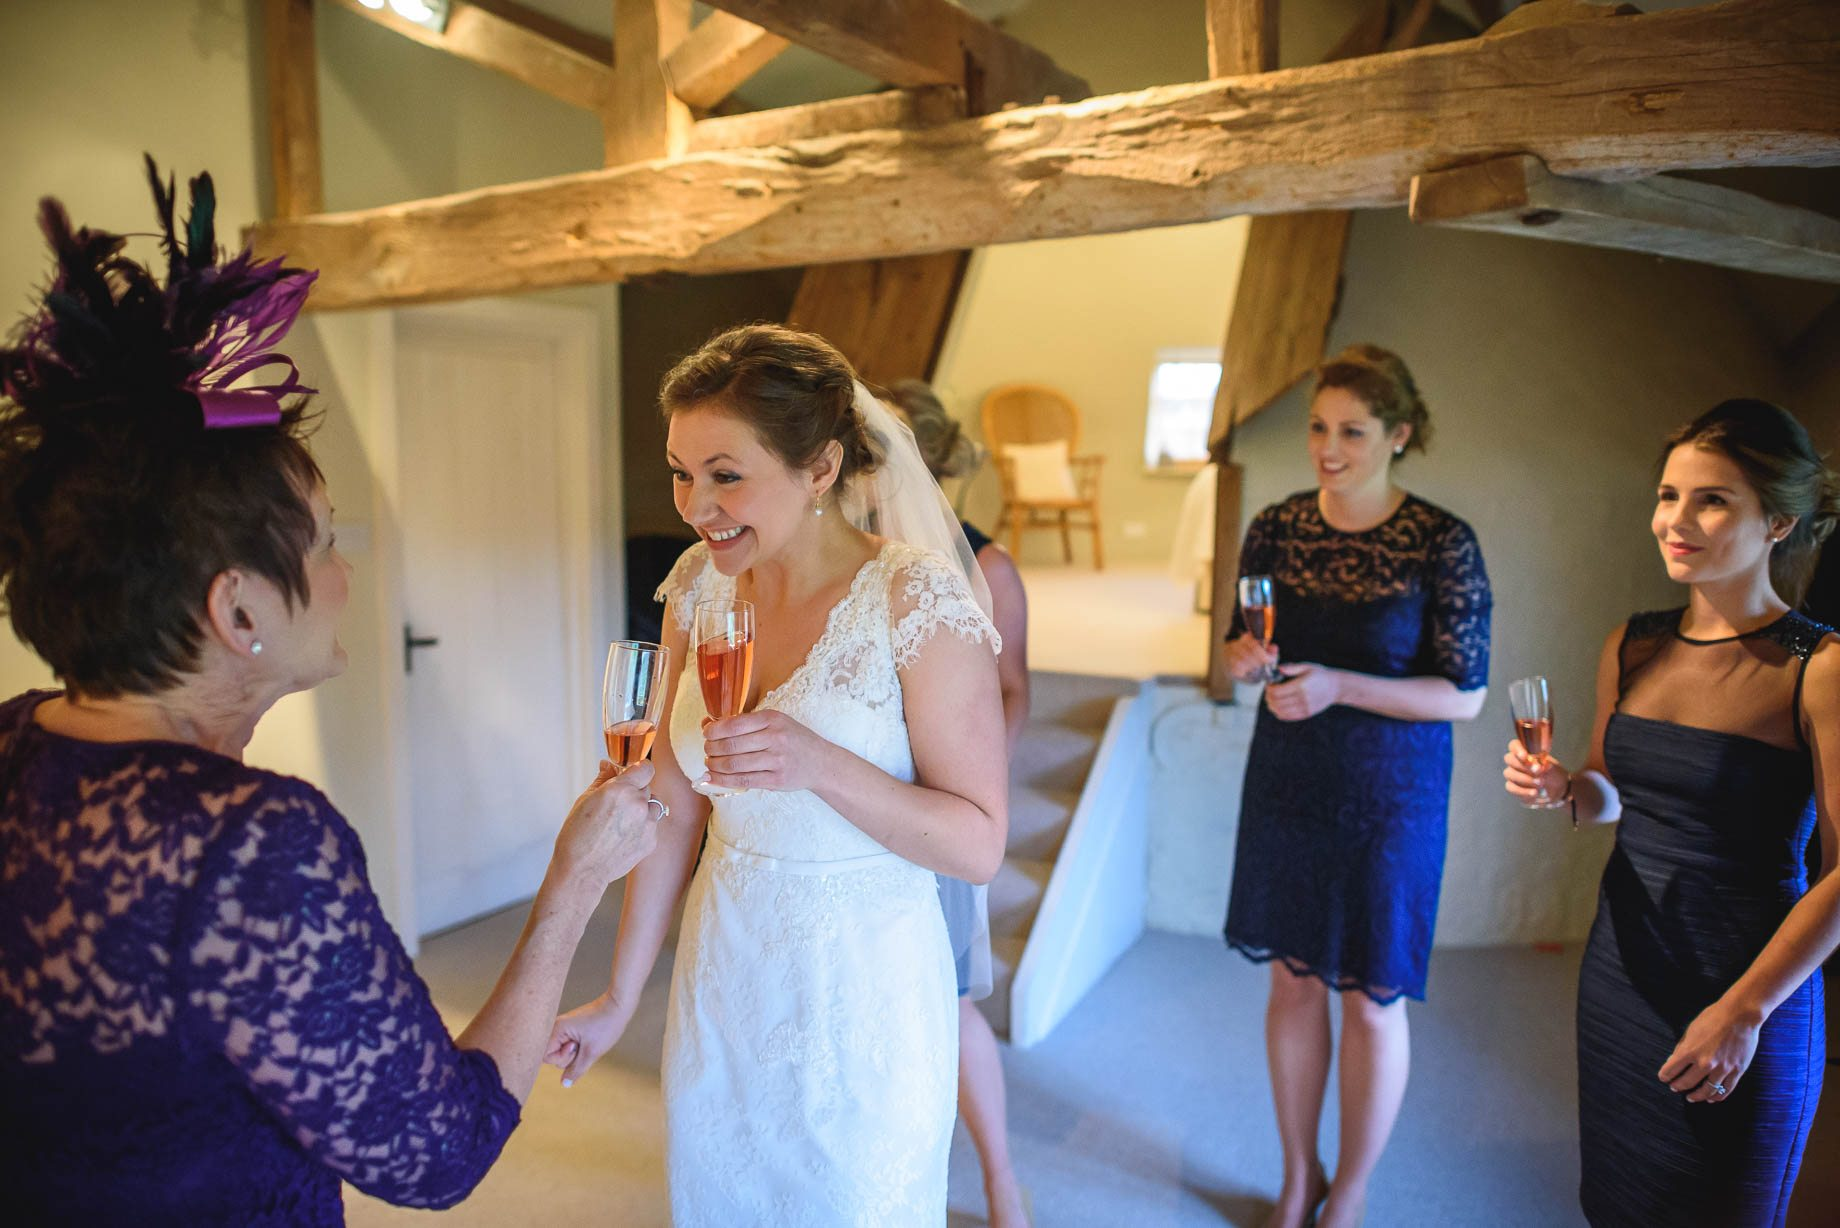 Bury Court Barn wedding photography - Ashley and Henry by Guy Collier Photography (33 of 188)